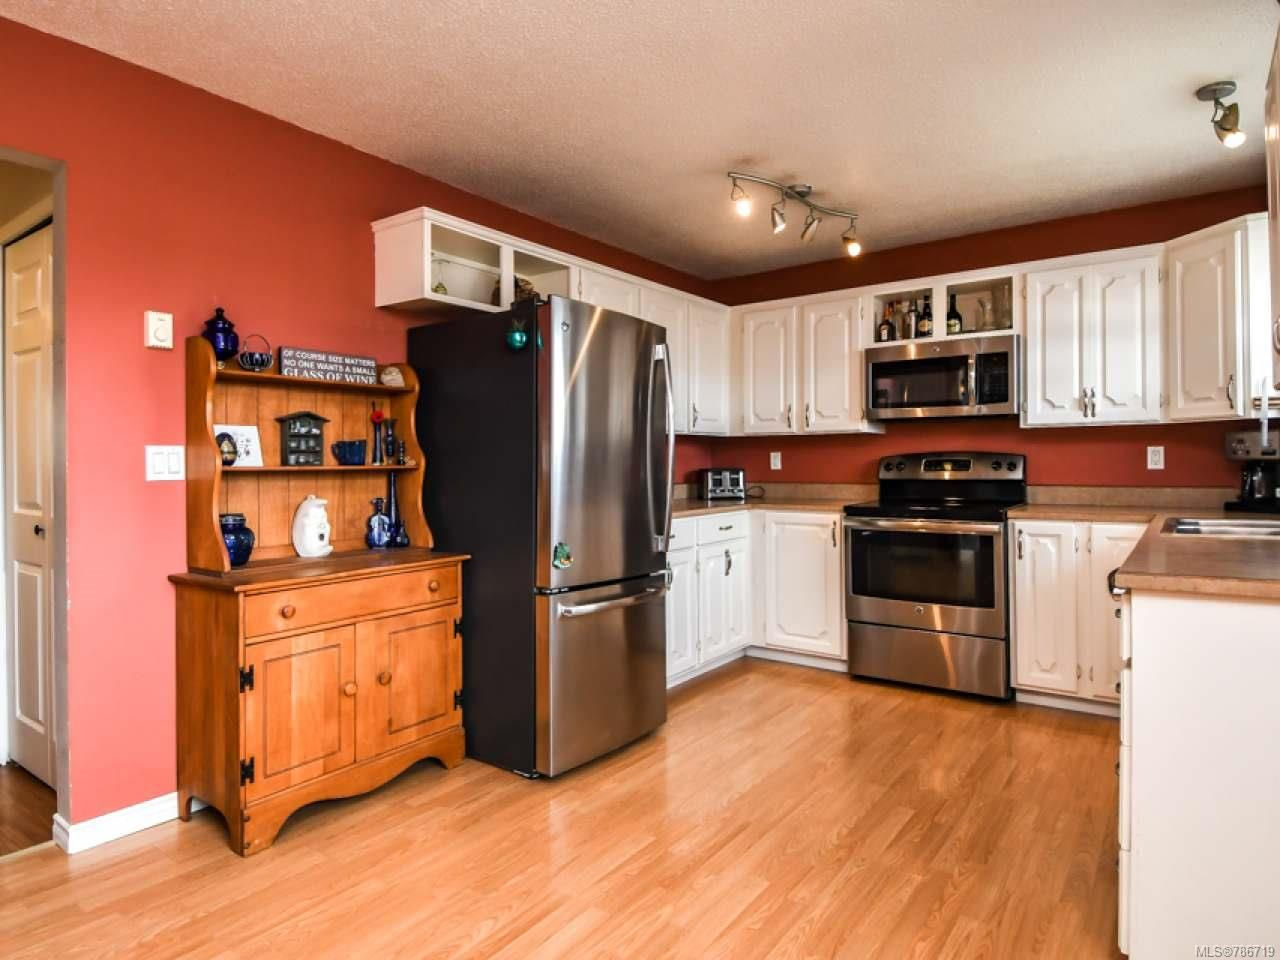 Photo 17: Photos: 1234 Denis Rd in CAMPBELL RIVER: CR Campbell River Central House for sale (Campbell River)  : MLS®# 786719